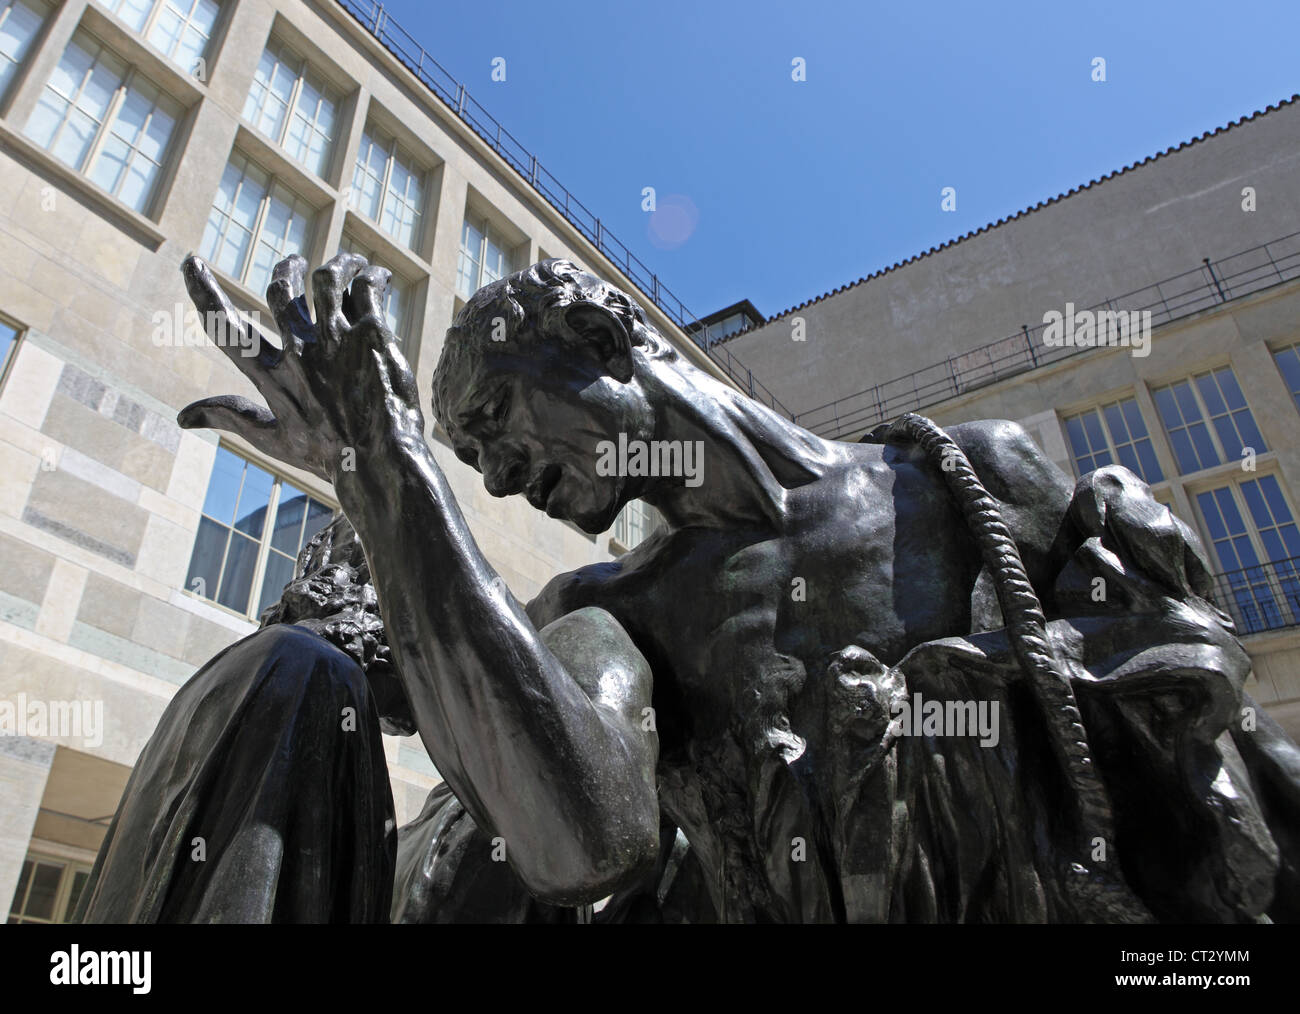 Bourgeois French Stock Photos & Bourgeois French Stock Images - Alamy